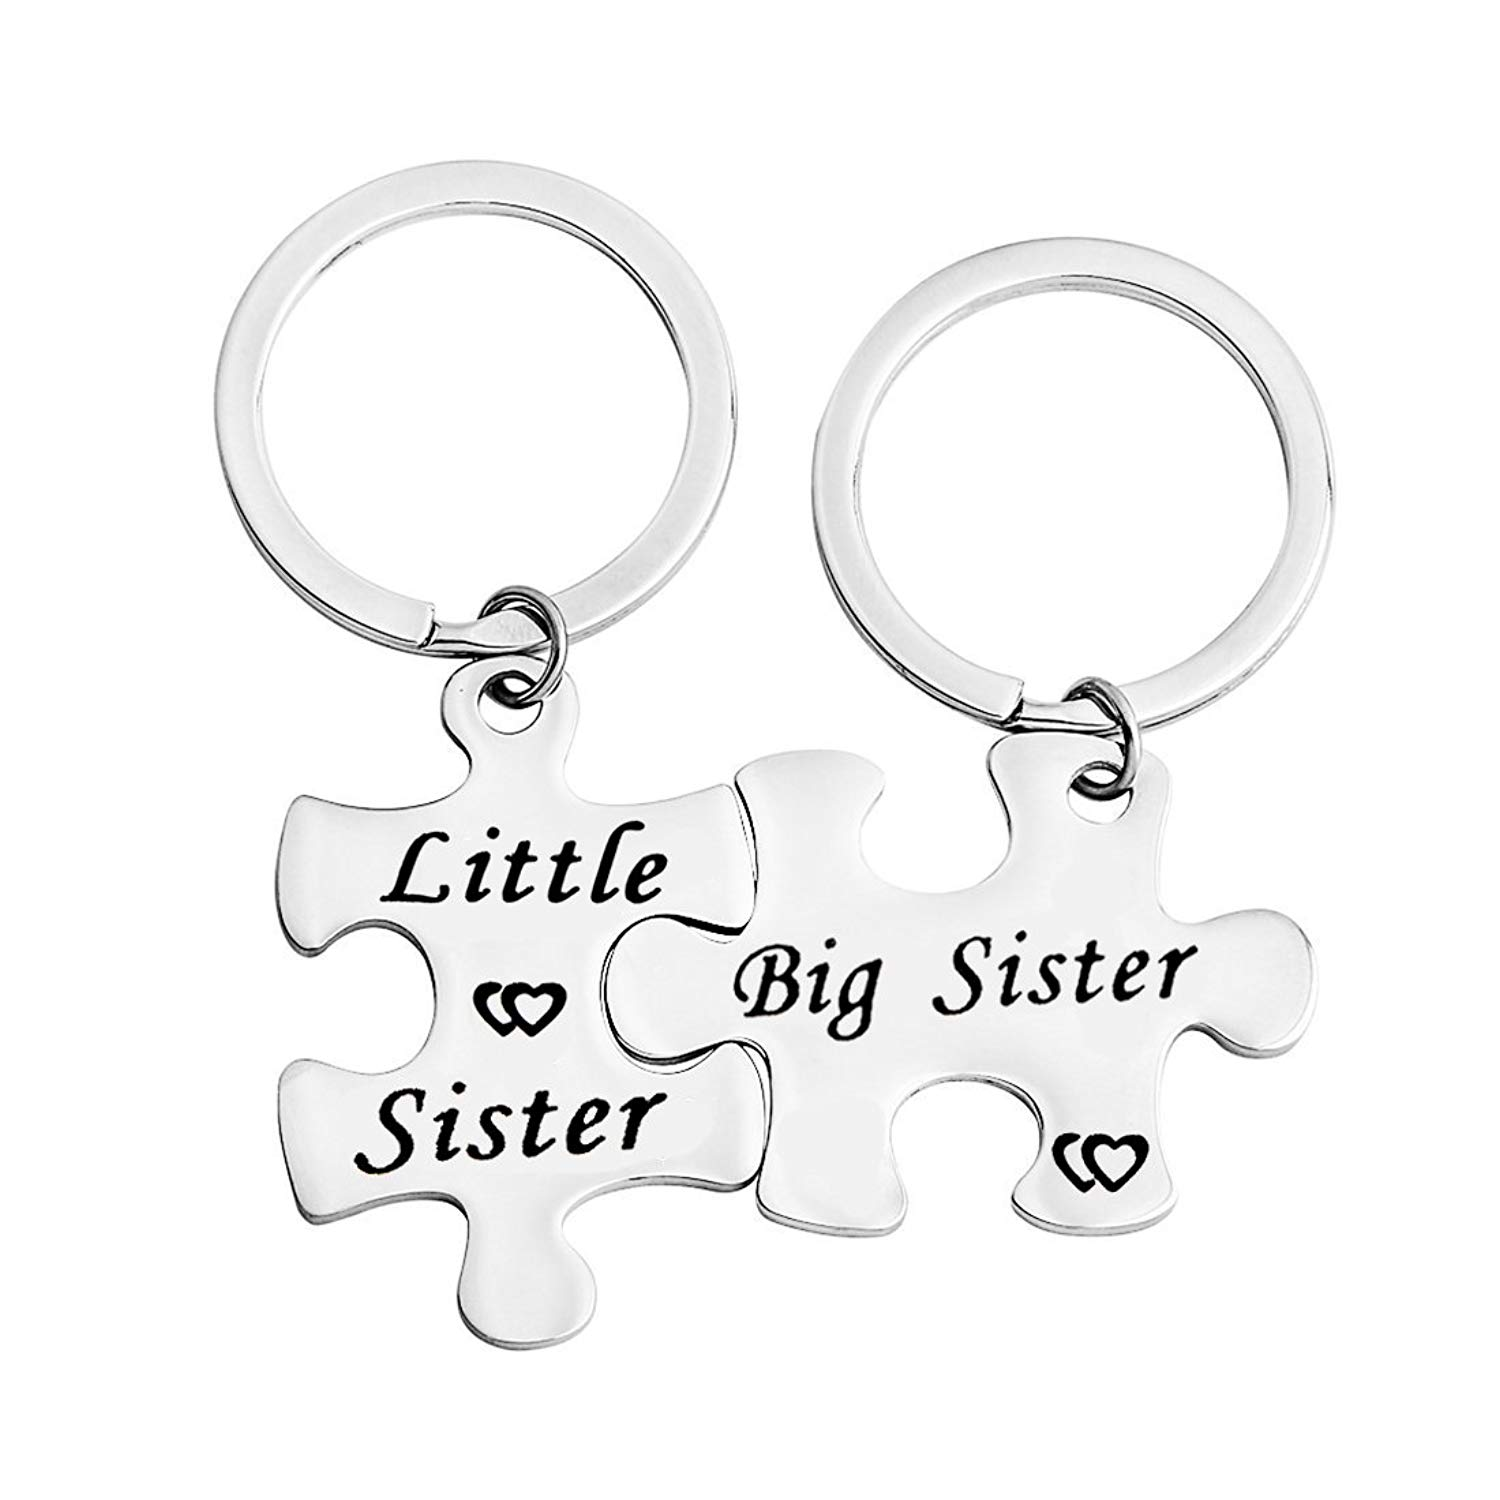 Gzrlyf Big Sister Little Sister Keychain Puzzle Pieces Gift Couples Jewelry Sister In Law Gift